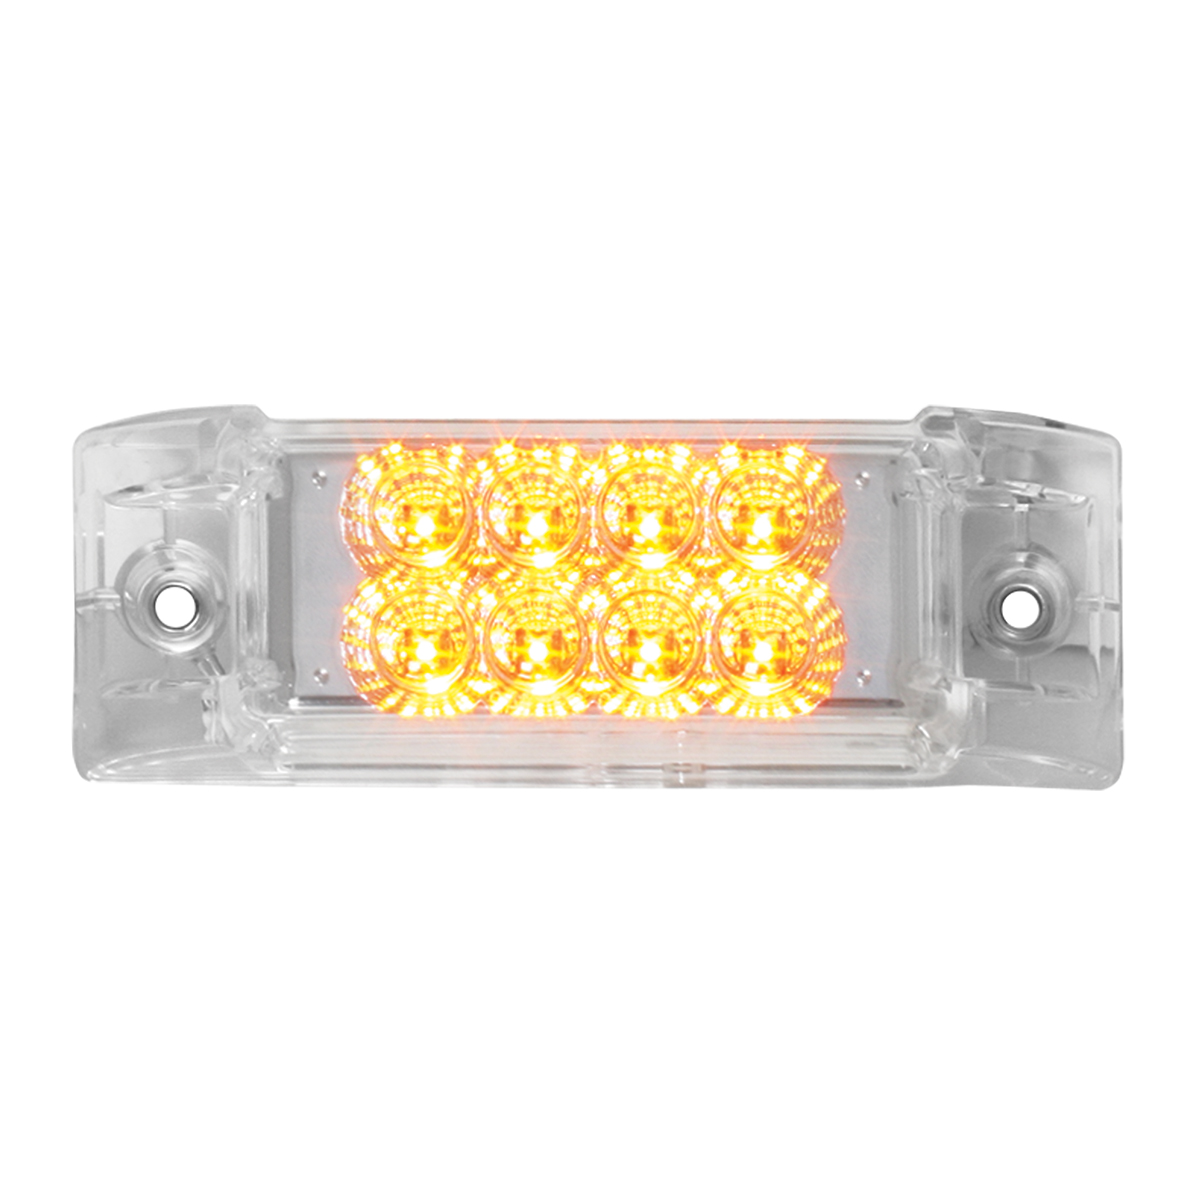 77661 Rectangular Spyder LED Marker Light in Amber/Clear